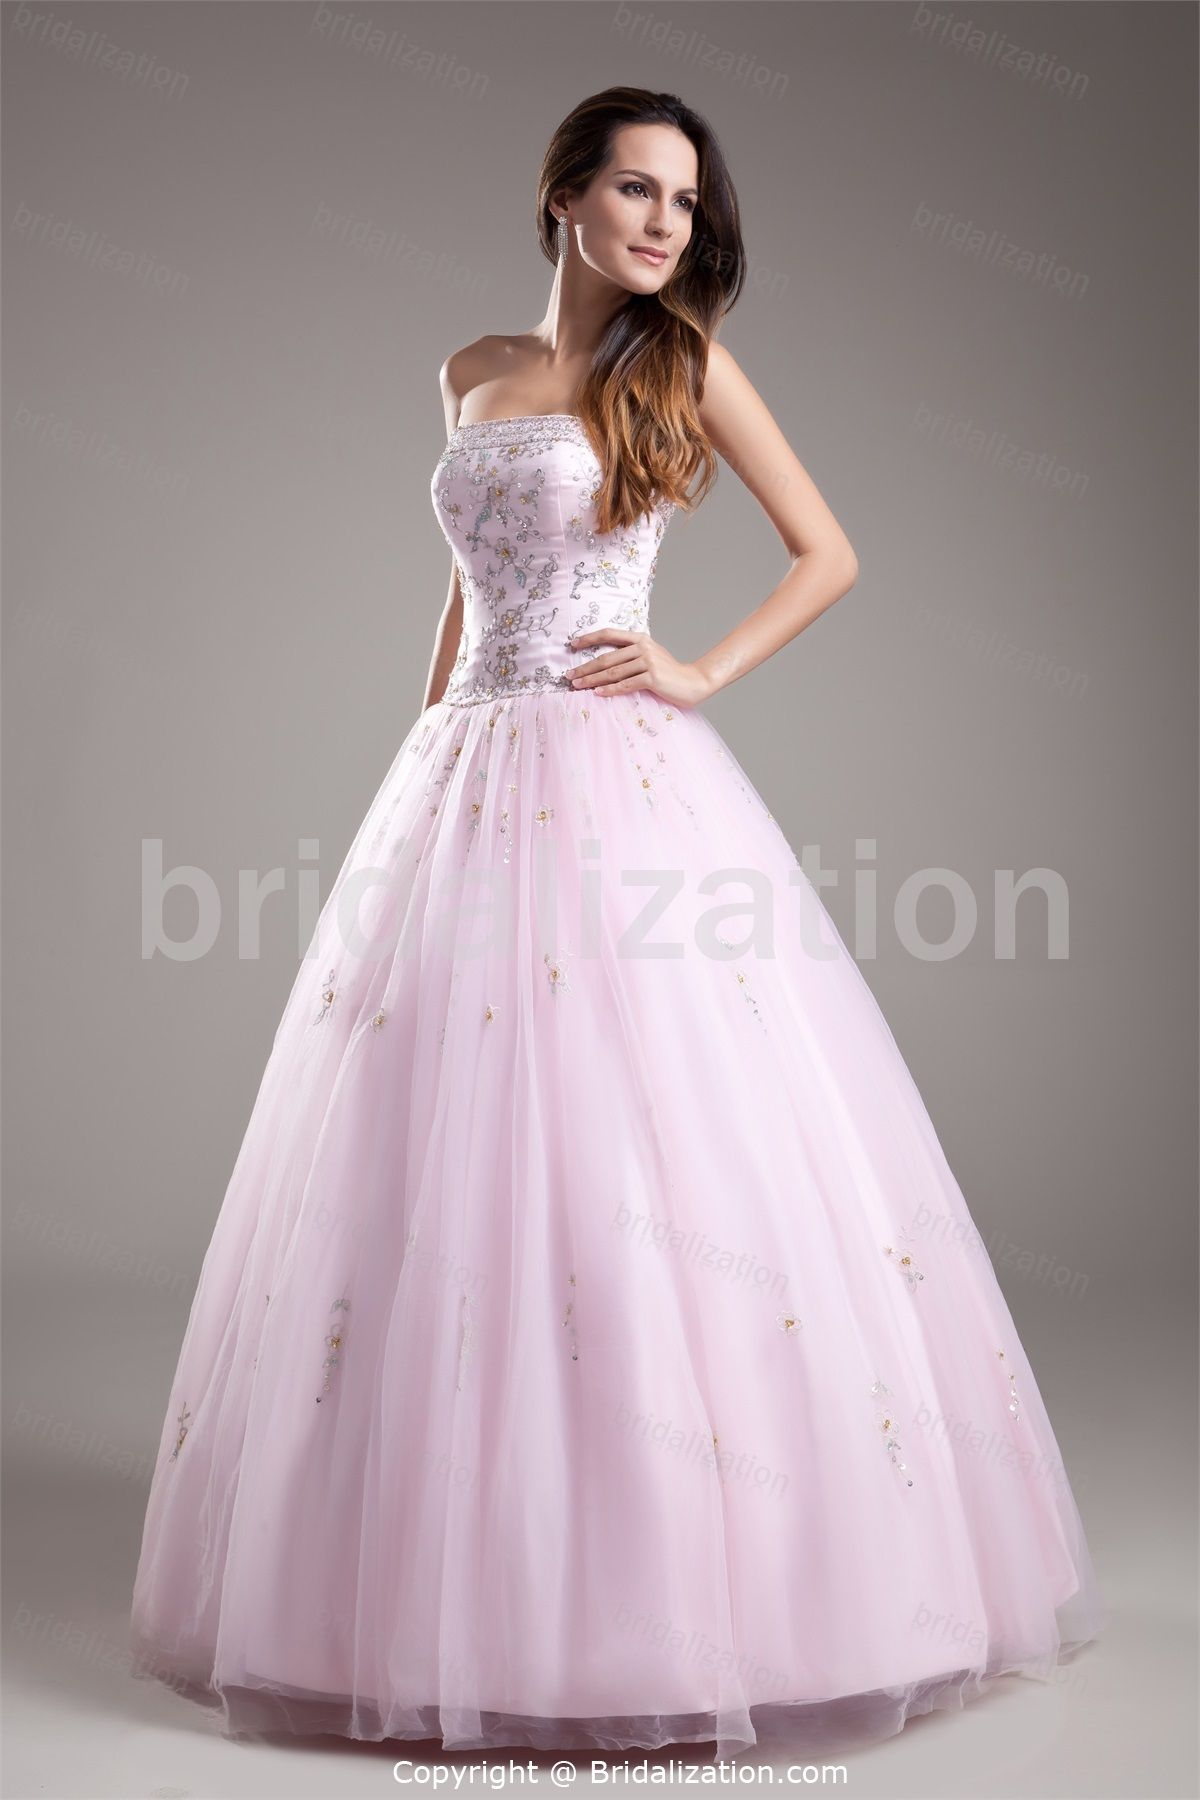 pink ball gown - Google Search | Dresses | Pinterest | Prom ...